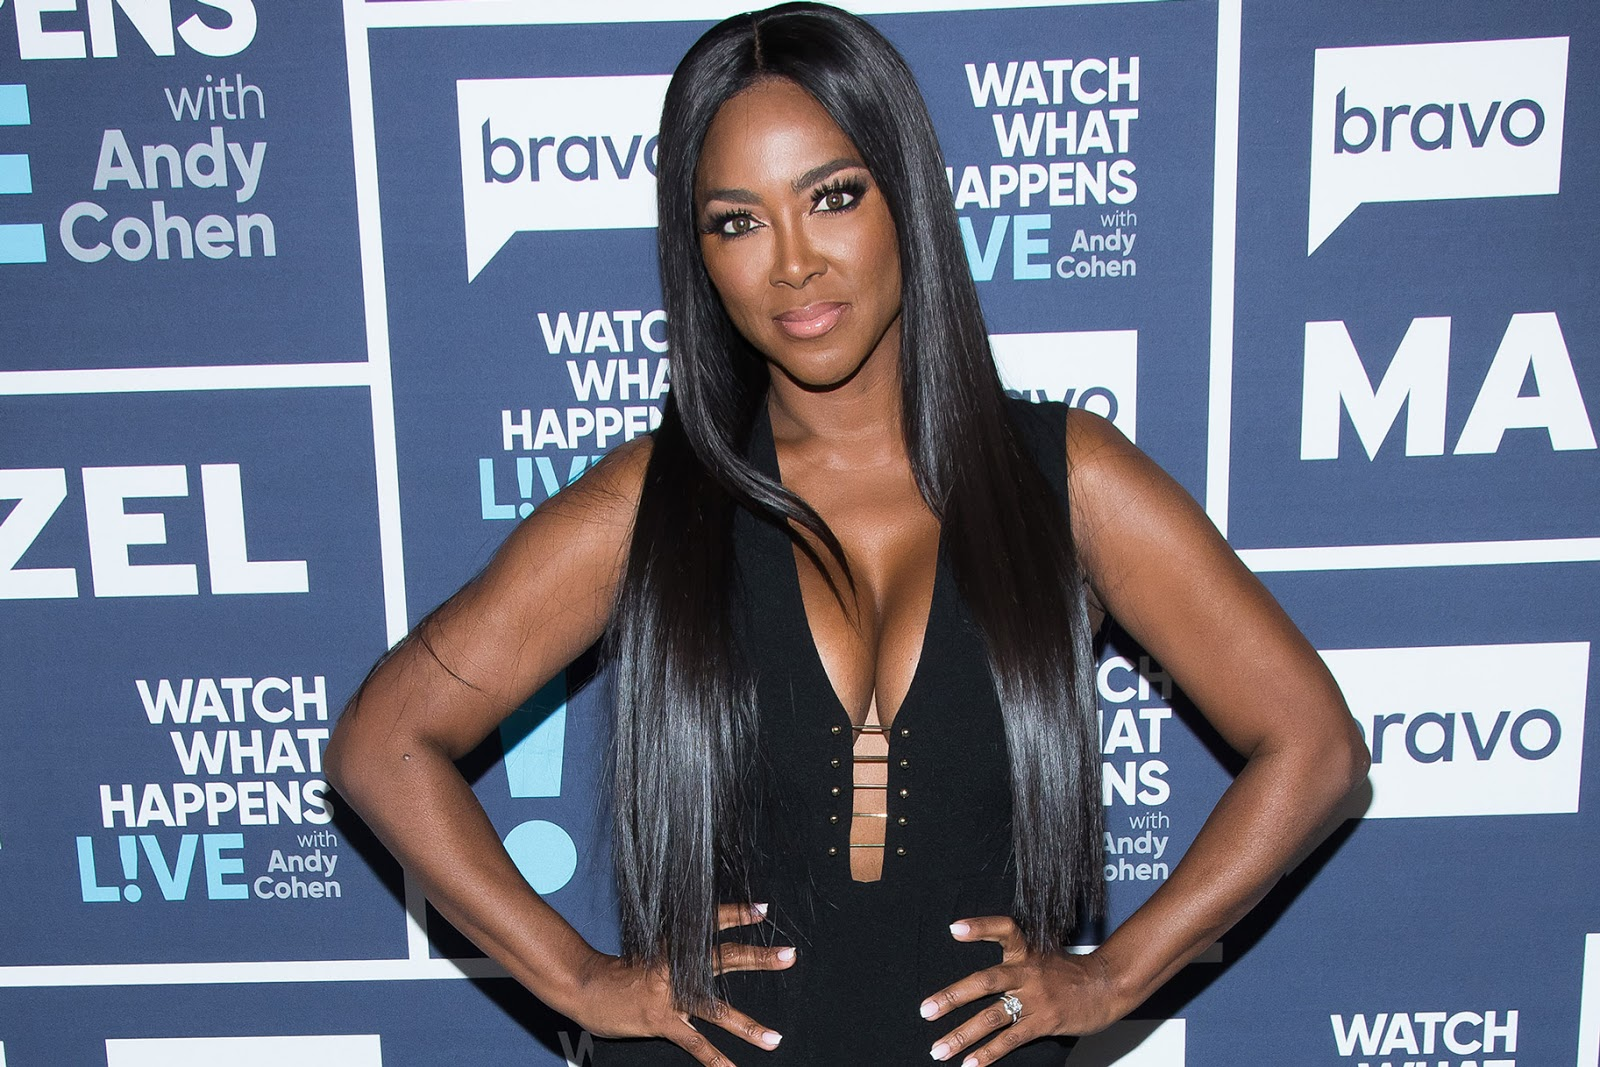 """kenya-moore-looks-drop-dead-gorgeous-in-this-all-black-outfit-fans-claim-that-motherhood-helped-shape-her-flawless-look-and-high-self-confidence"""